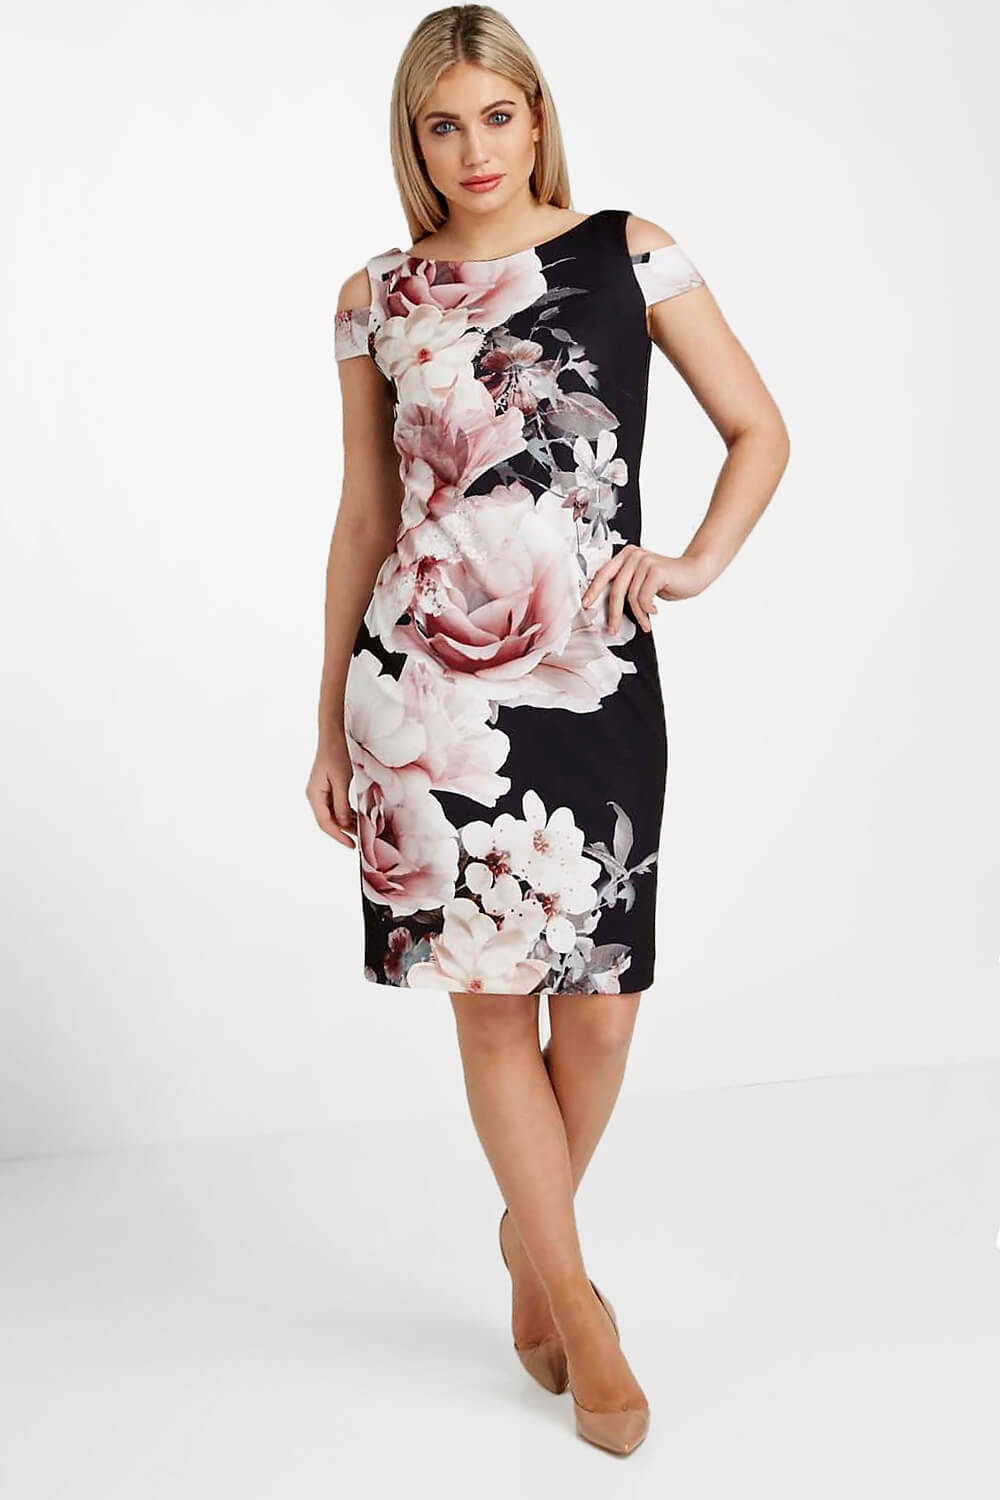 Roman-Originals-Women-039-s-Black-Floral-Print-Scuba-Dress-Sizes-10-20 thumbnail 11